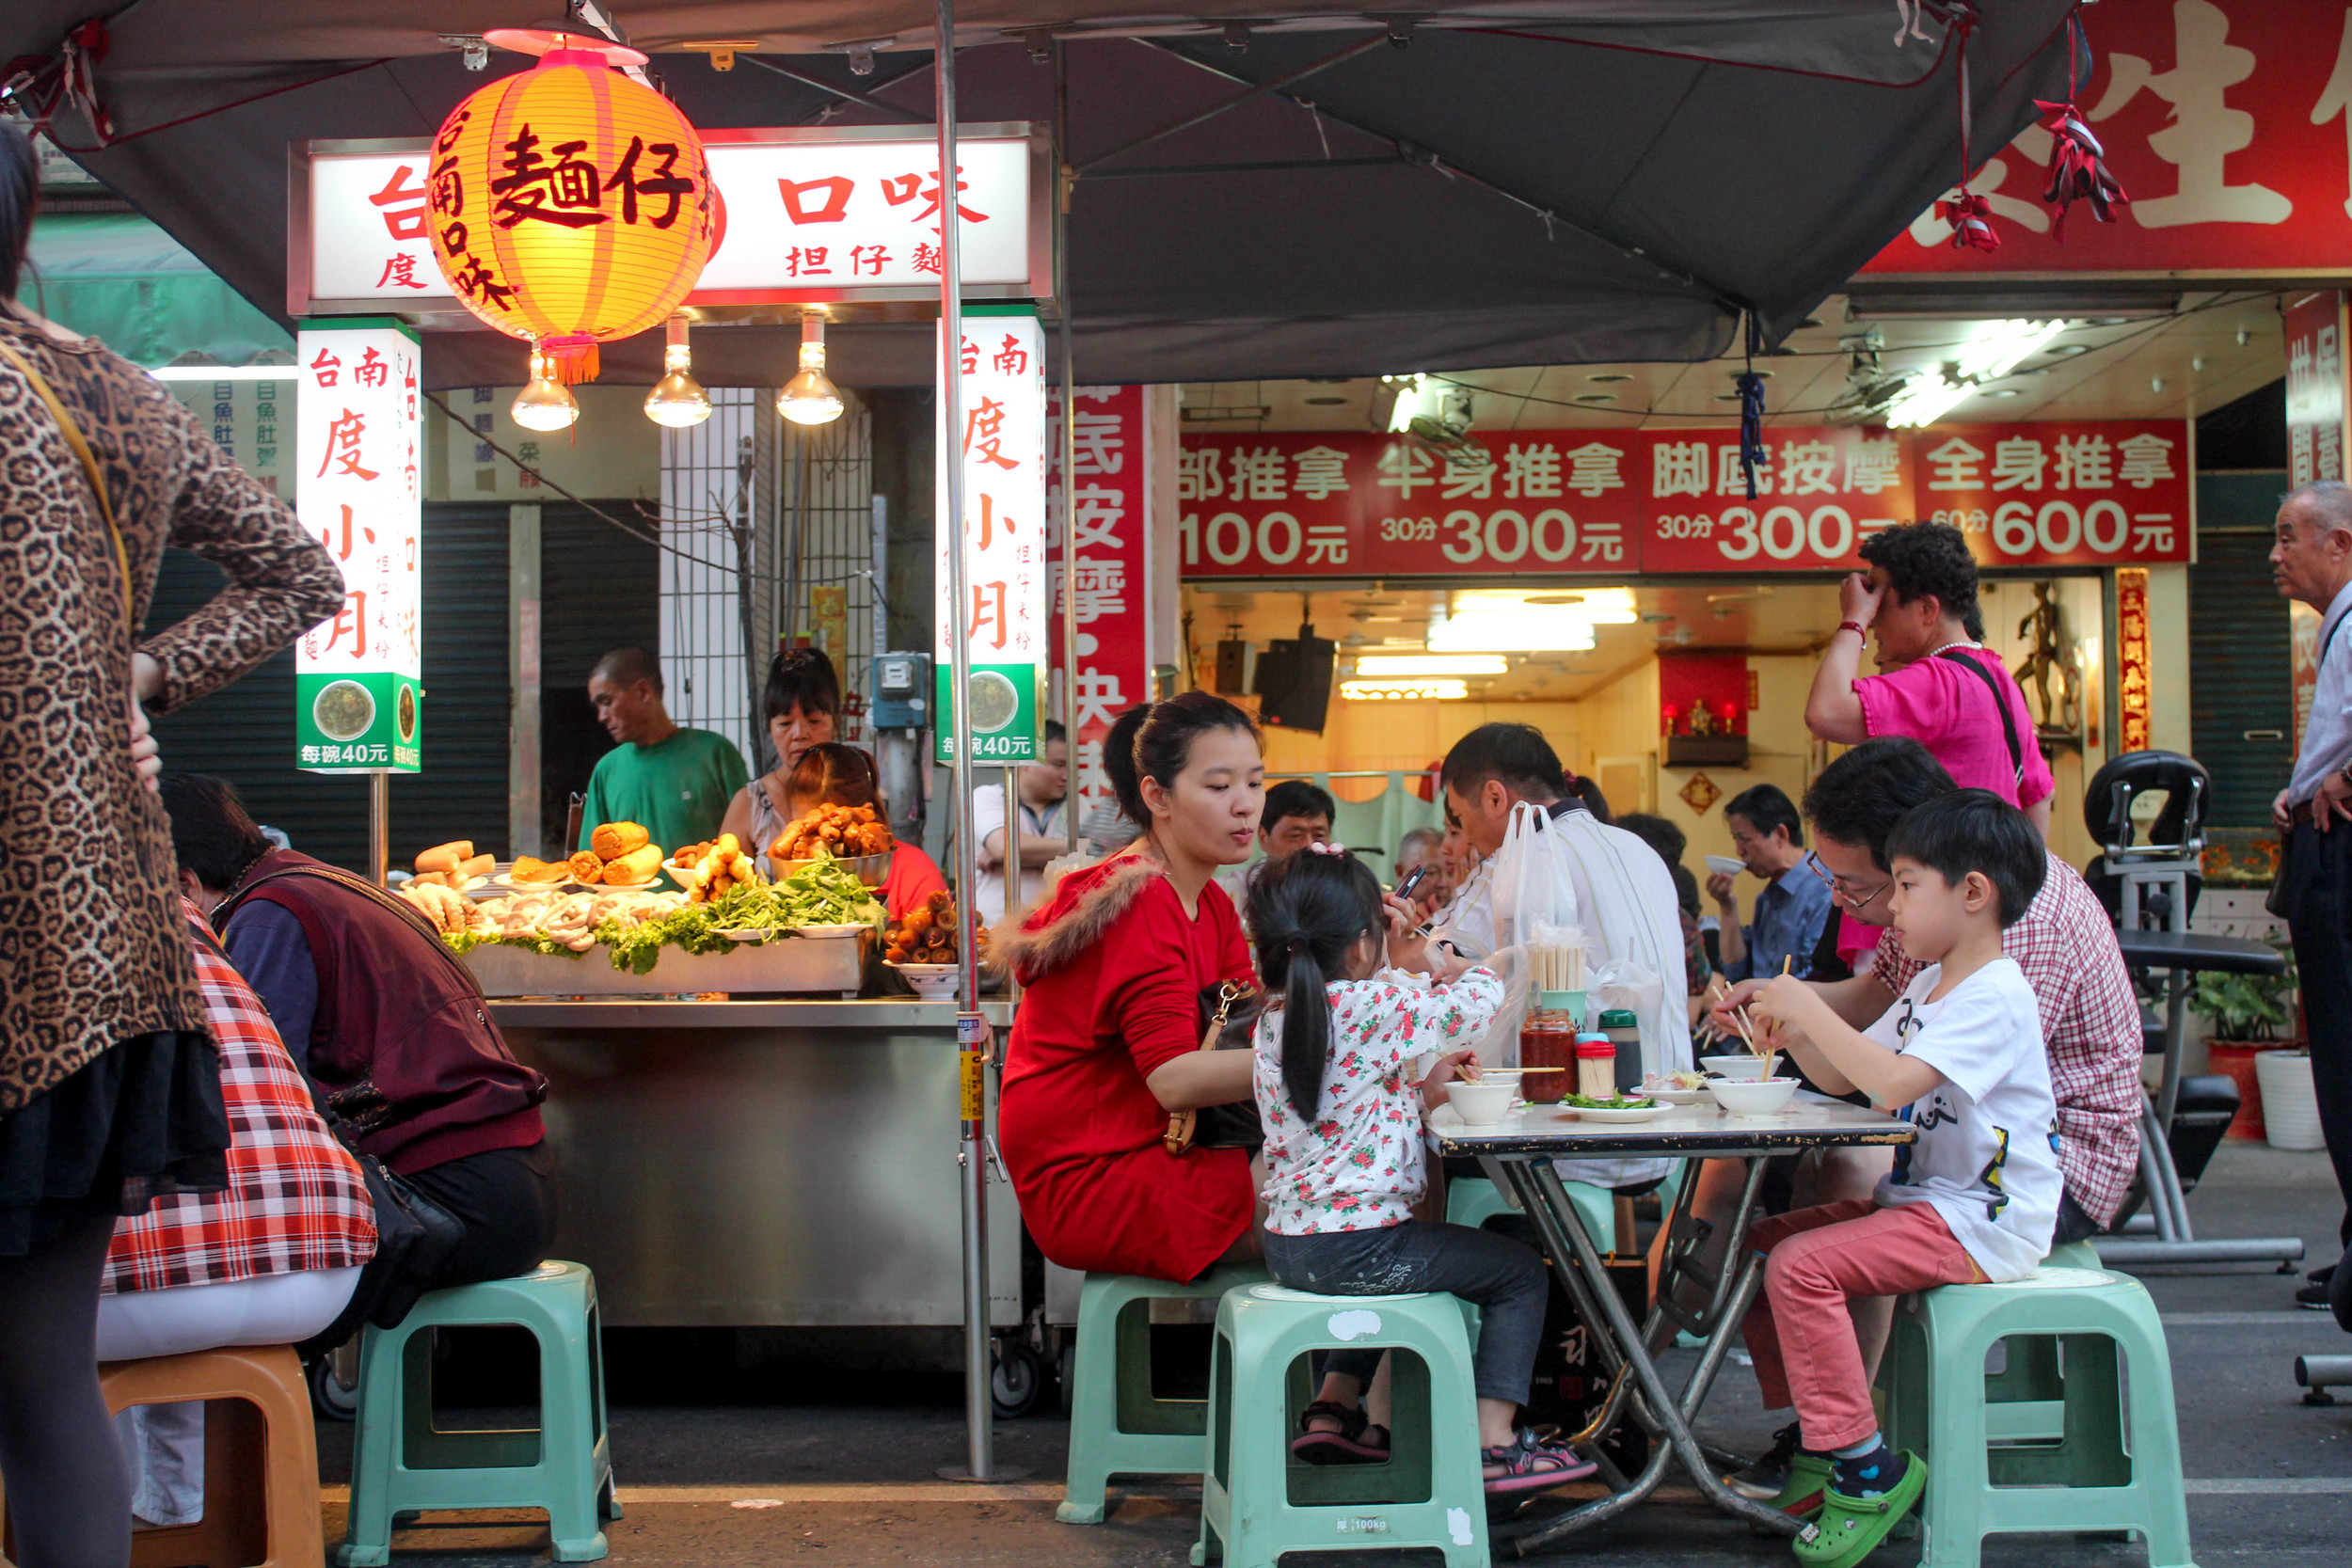 Richmond's night market is nothing more than a filler for those who have experienced the madness in Asia. This is in Kaohsiung, Taiwan.